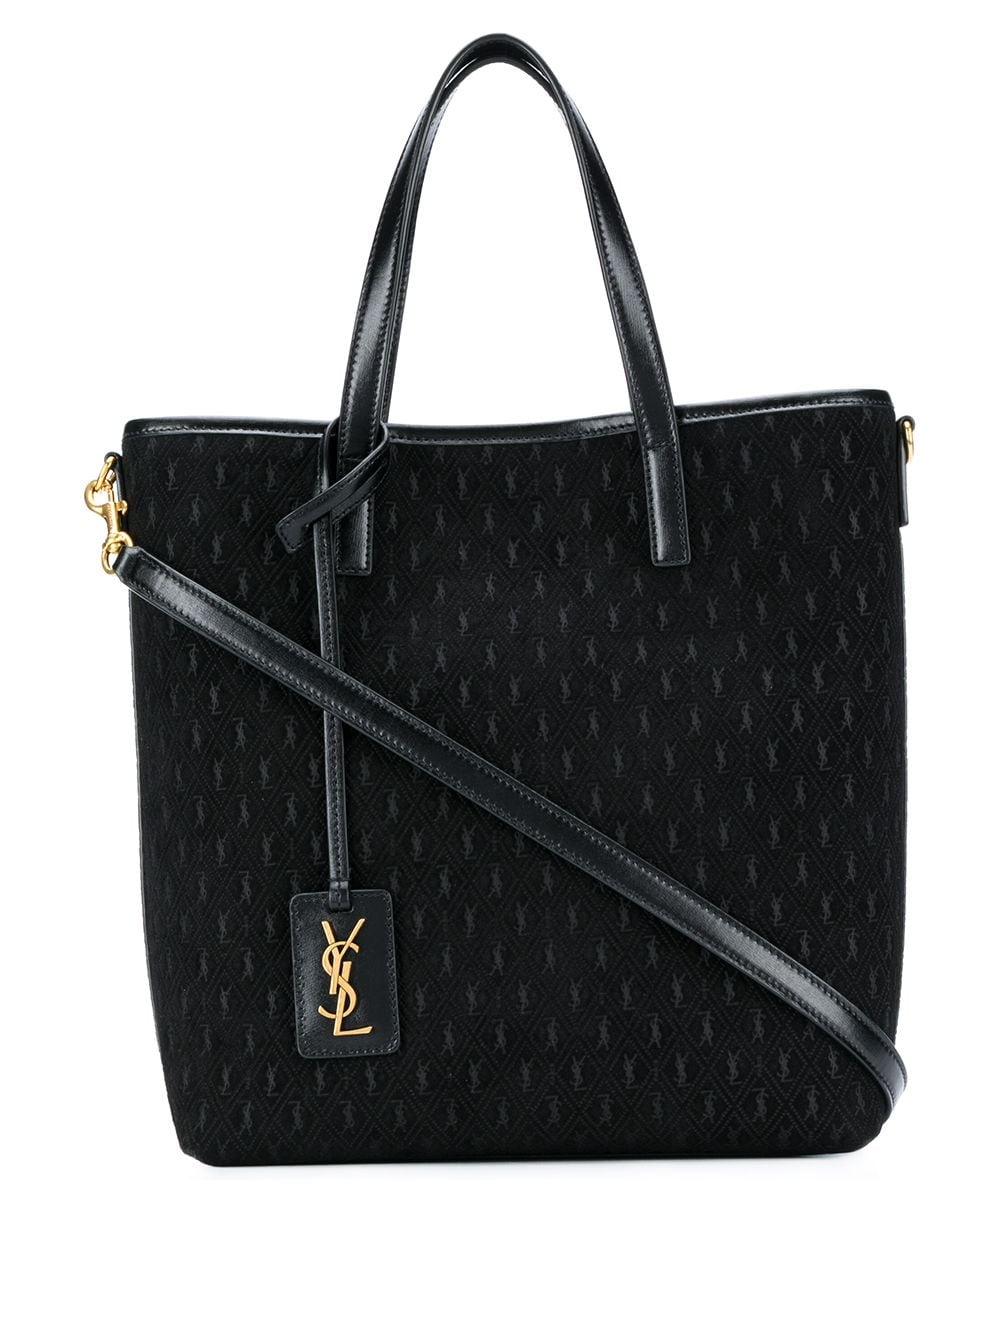 All-Over Monogram Tote